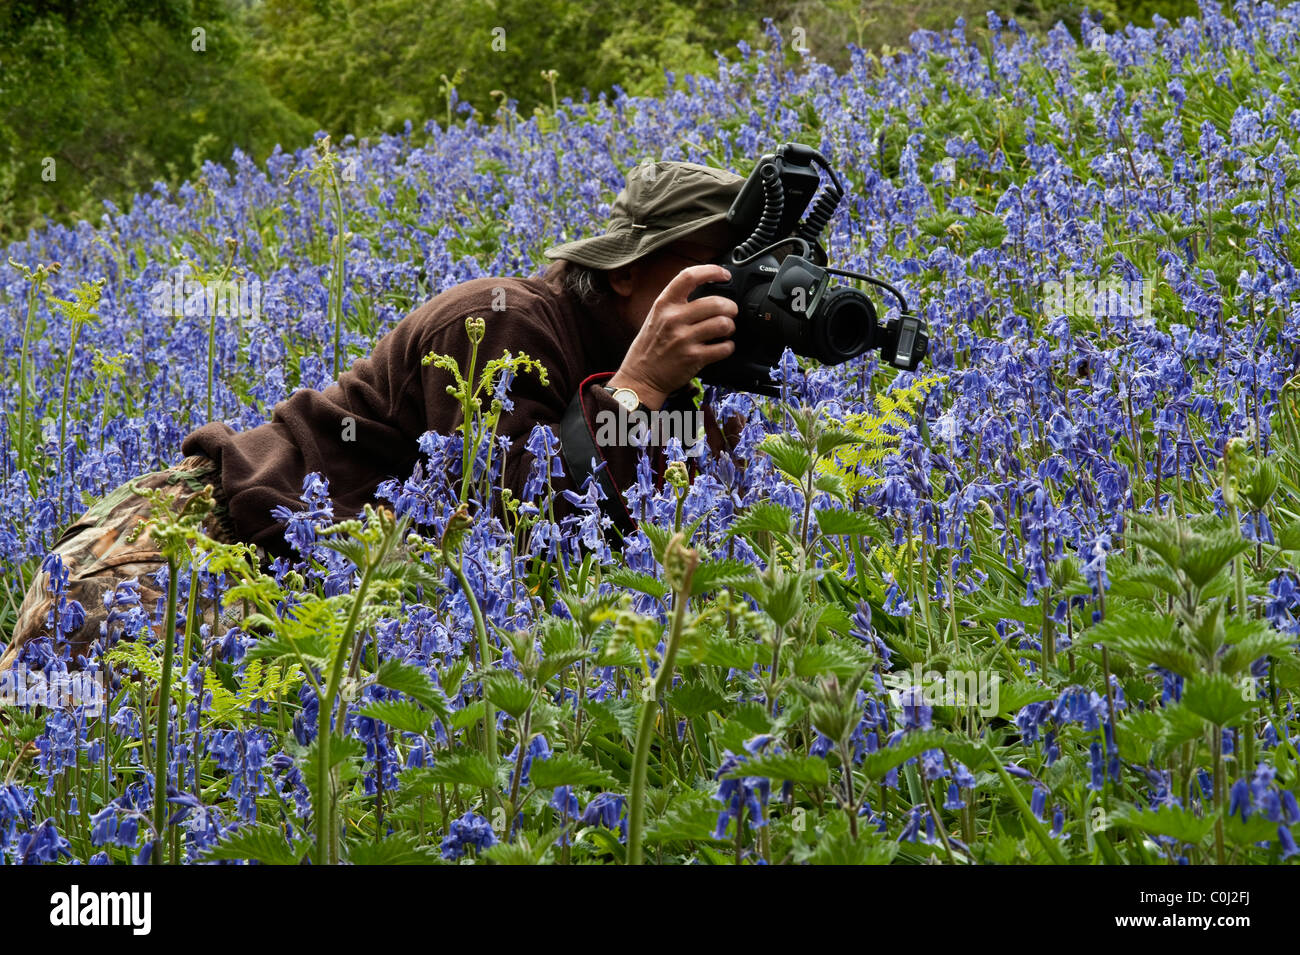 Man photographing amongst bluebells (Endymion non-scriptus) flowers Ghyll Woods Dufton Lake District Cumbria England - Stock Image